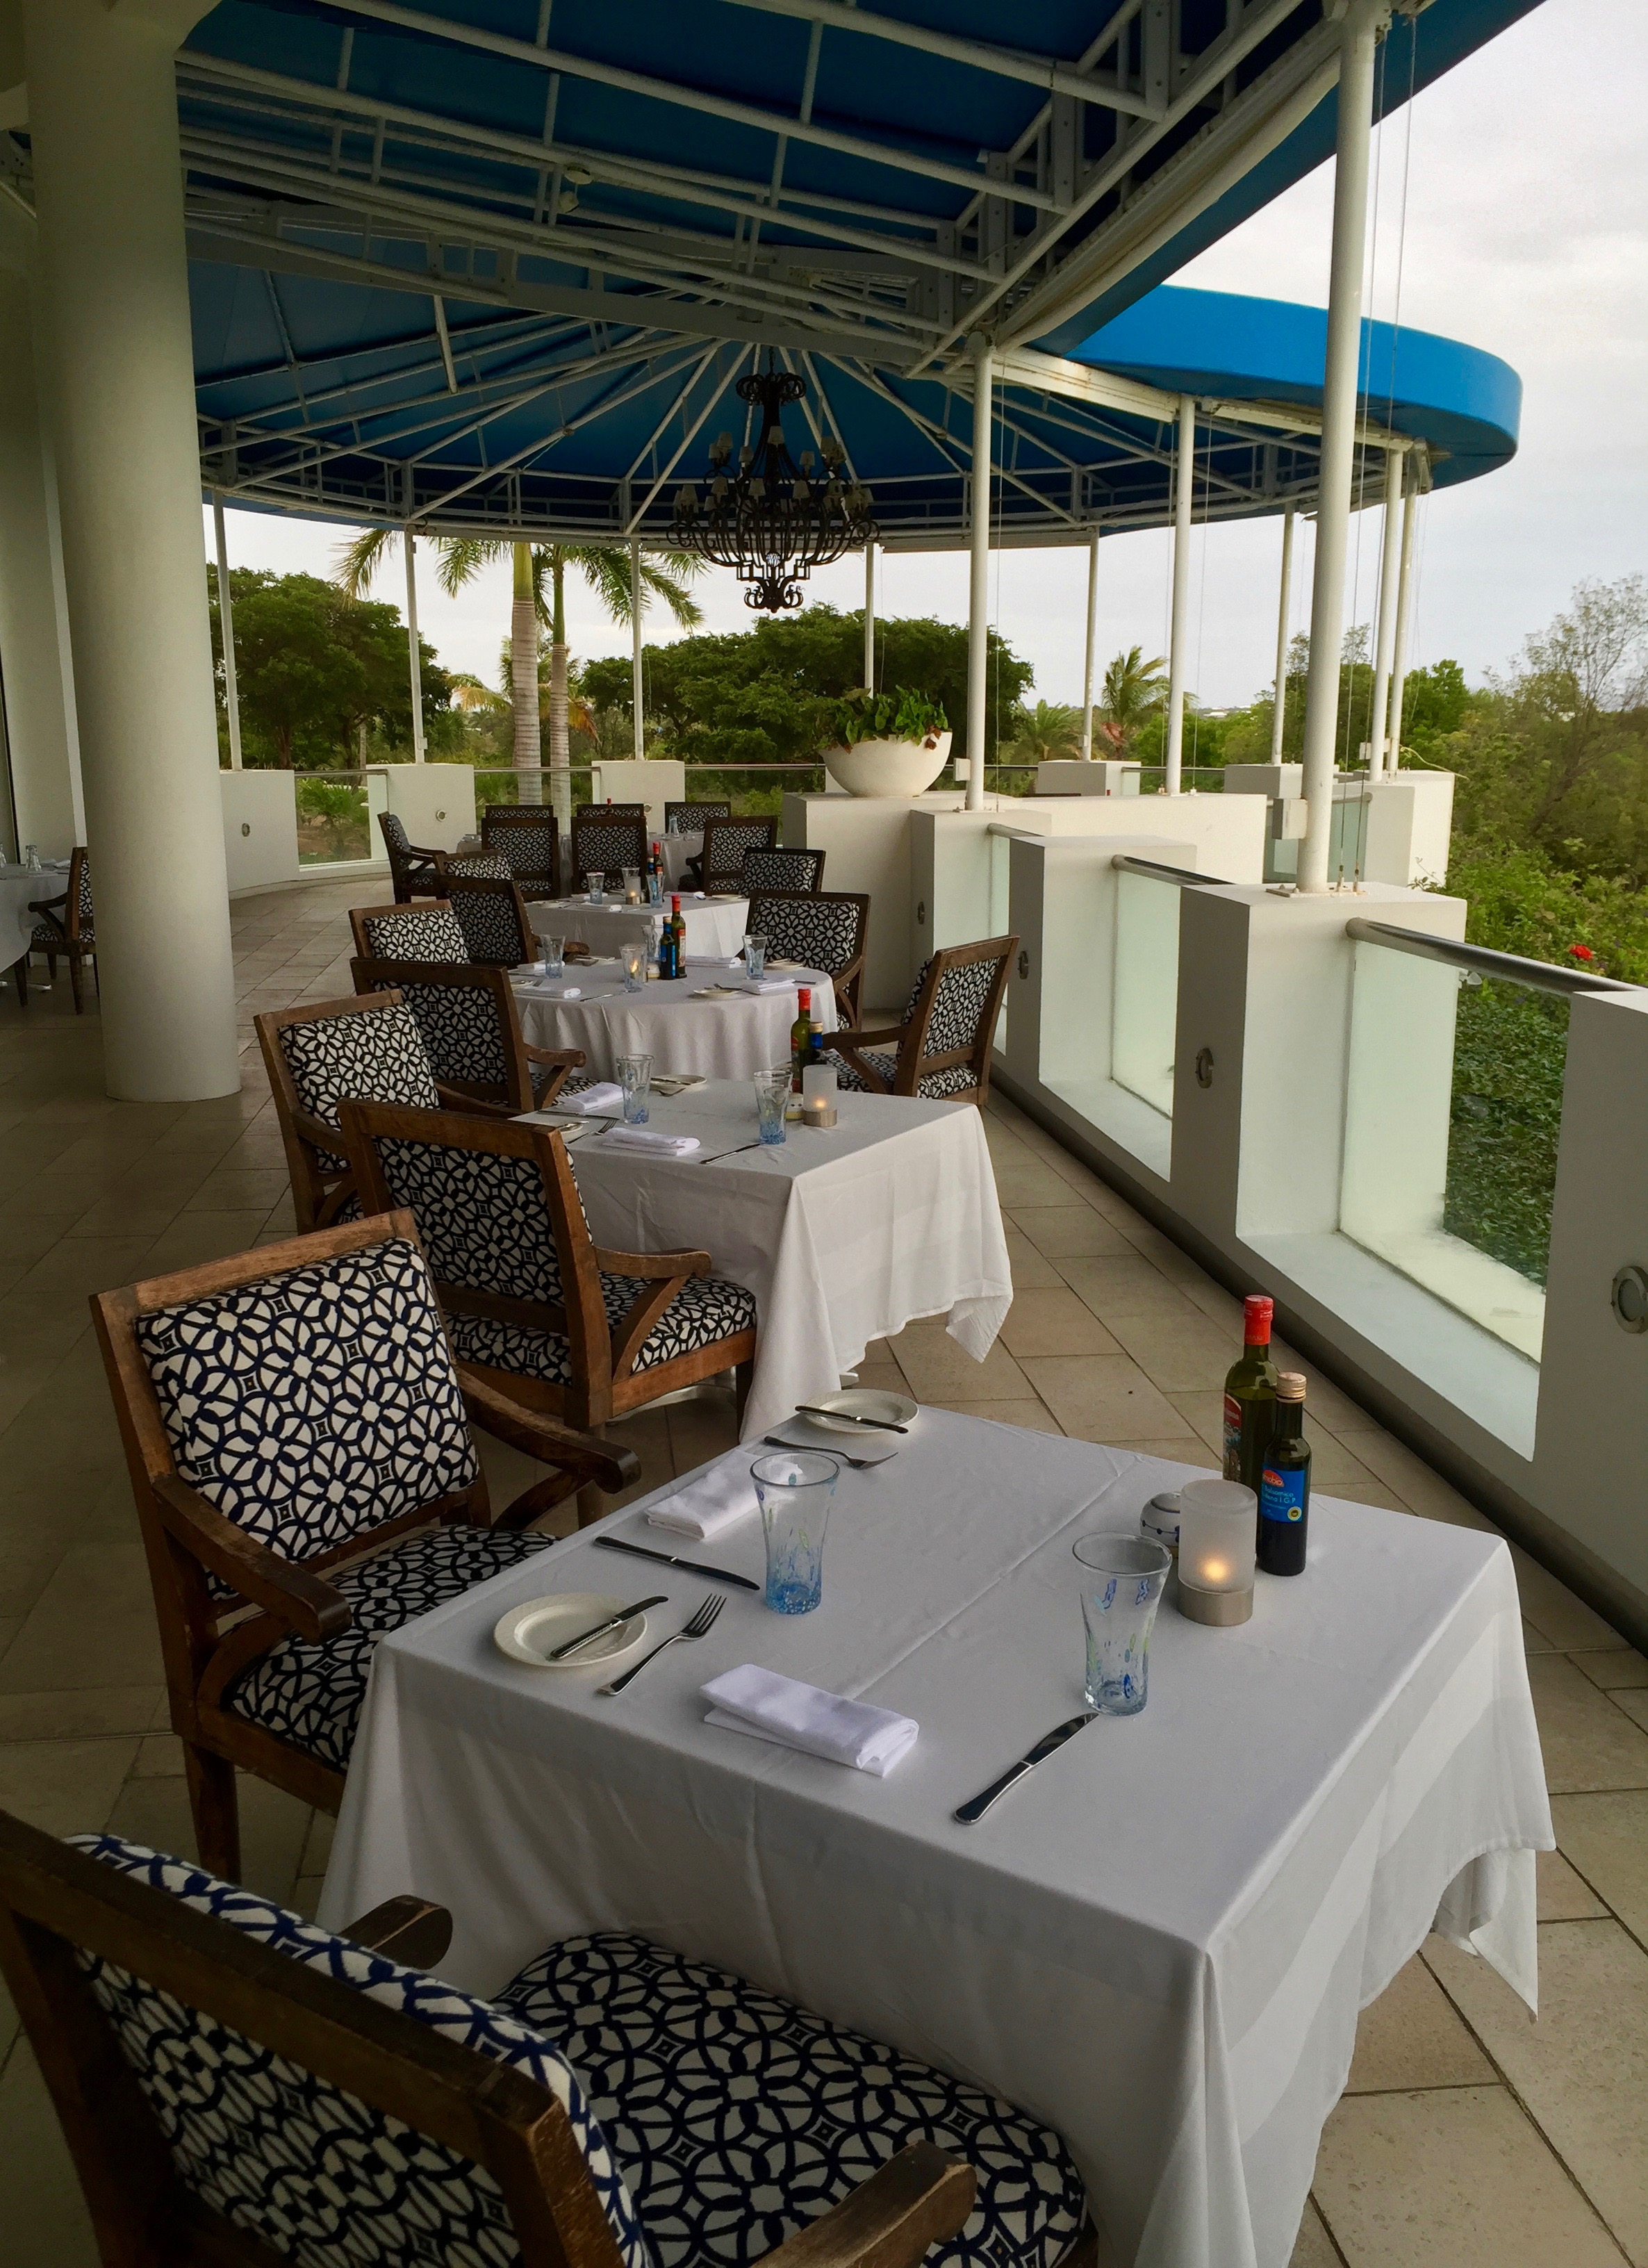 Dining at Italia, the golf club's restaurant